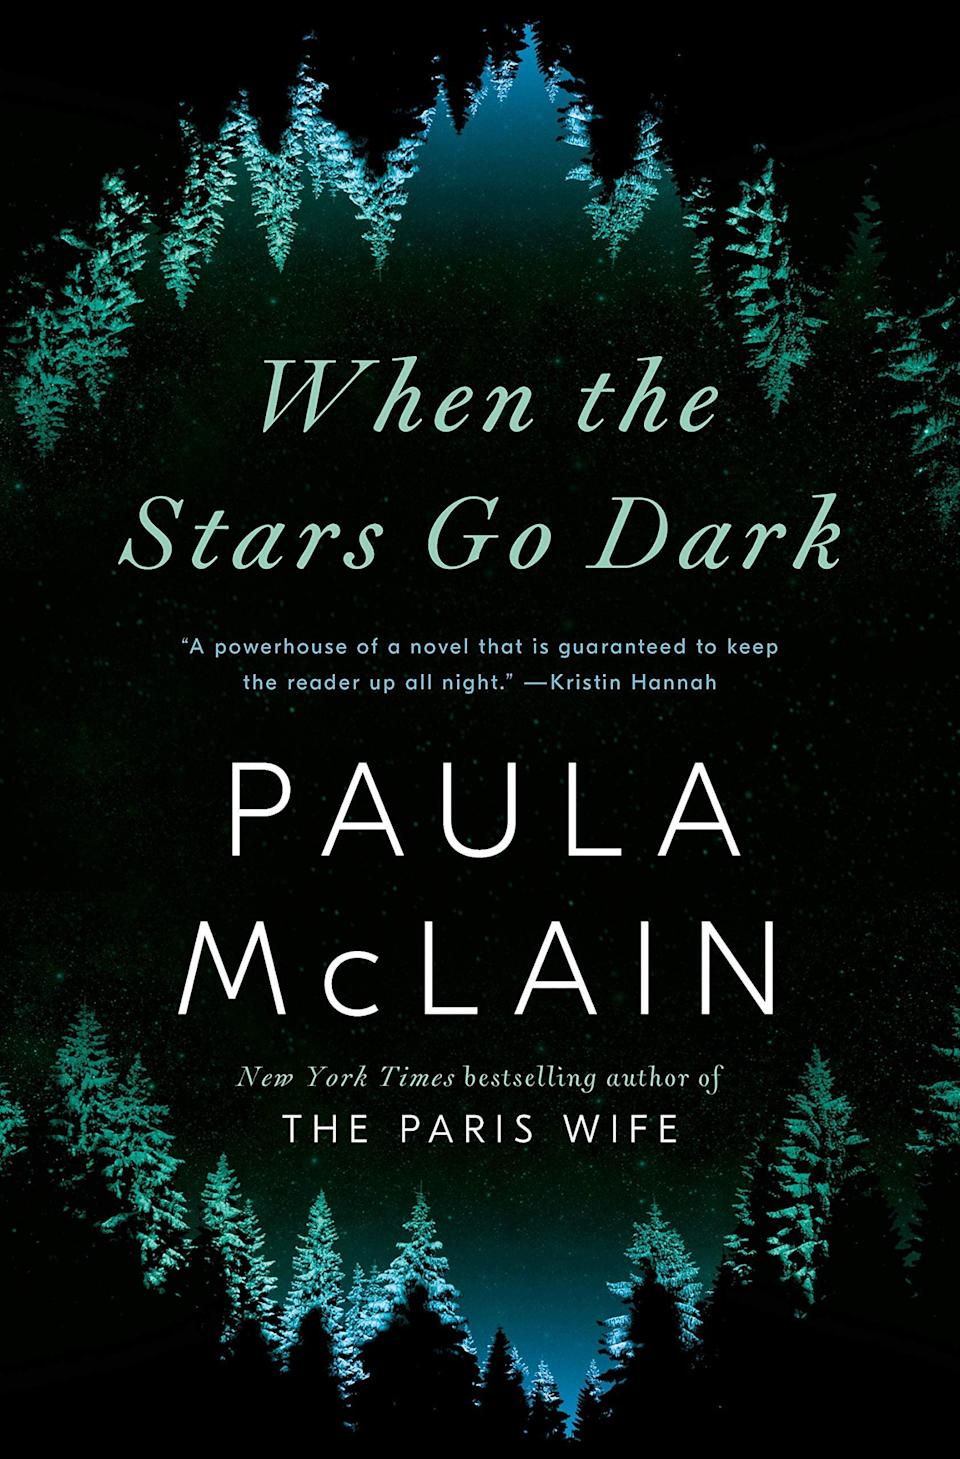 "<p>A missing persons detective returns to the beloved town of her childhood to grieve a personal loss in Paula McLain's <a href=""https://www.amazon.com/When-Stars-Go-Dark-Random/dp/059339559X"" class=""link rapid-noclick-resp"" rel=""nofollow noopener"" target=""_blank"" data-ylk=""slk:When the Stars Go Dark""><strong>When the Stars Go Dark</strong></a>. But what Anna Hart doesn't expect is for the small town she's seeking refuge in to be gripped by the disappearance of a teenage girl. Now Anna has no choice but to confront her past in order to solve the case and process her own trauma. </p> <p><em>Out April 27</em></p>"